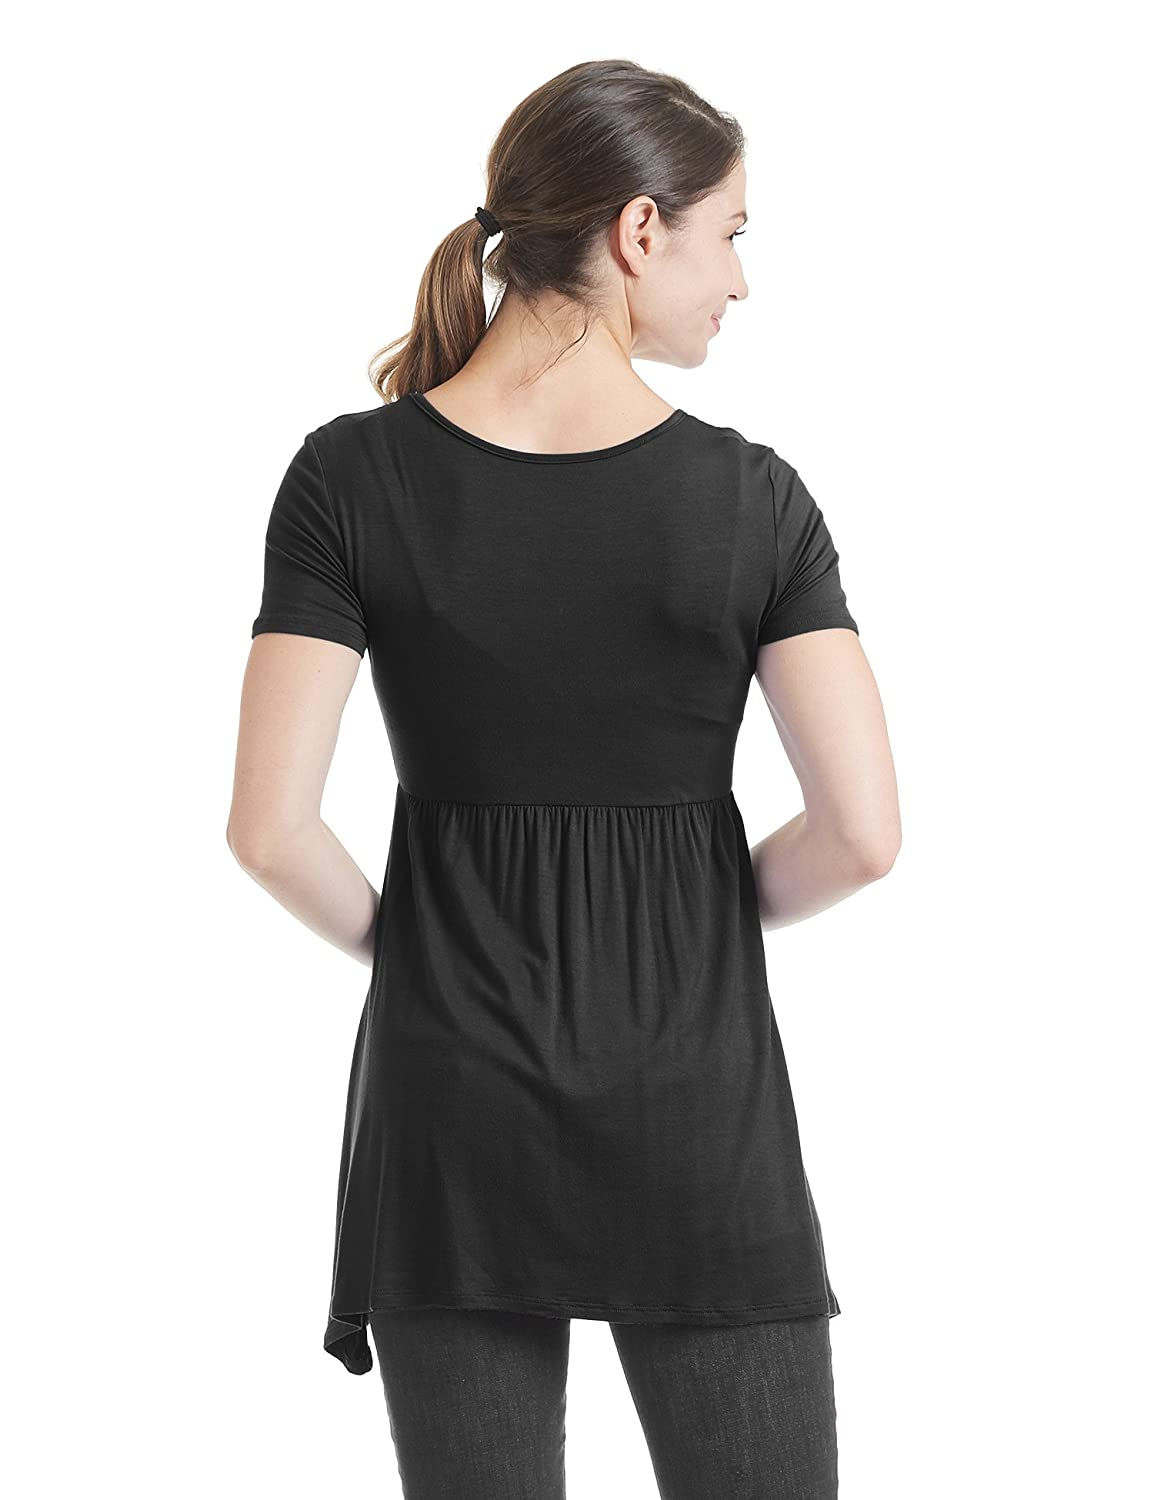 Come Together California CTC Womens Short Sleeve Ruched Center Top Made in USA